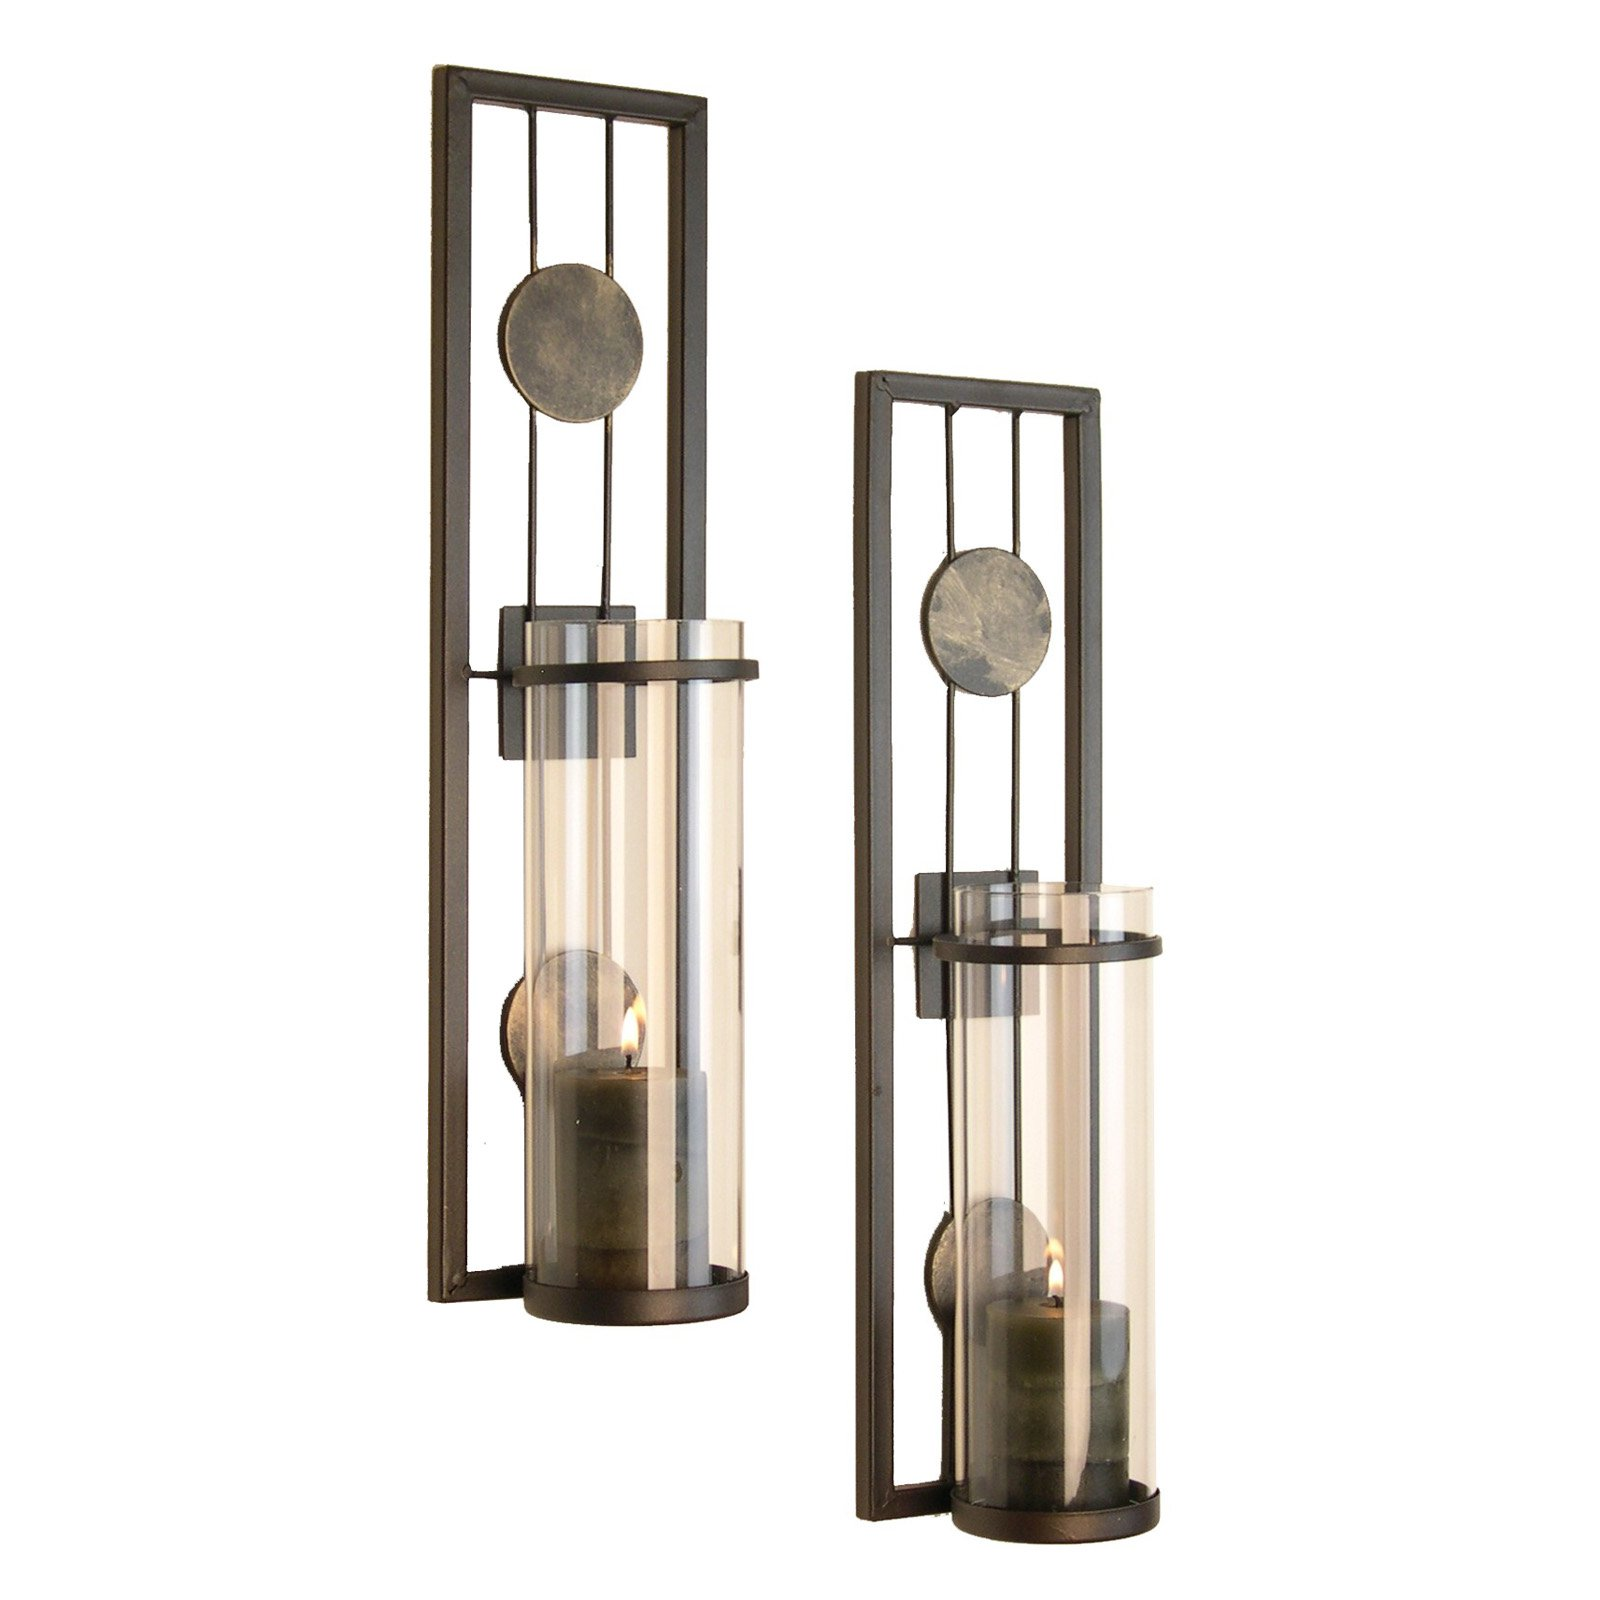 Danya B Contemporary Metal Wall Sconces With Antique Patina Medallions    Set Of 2